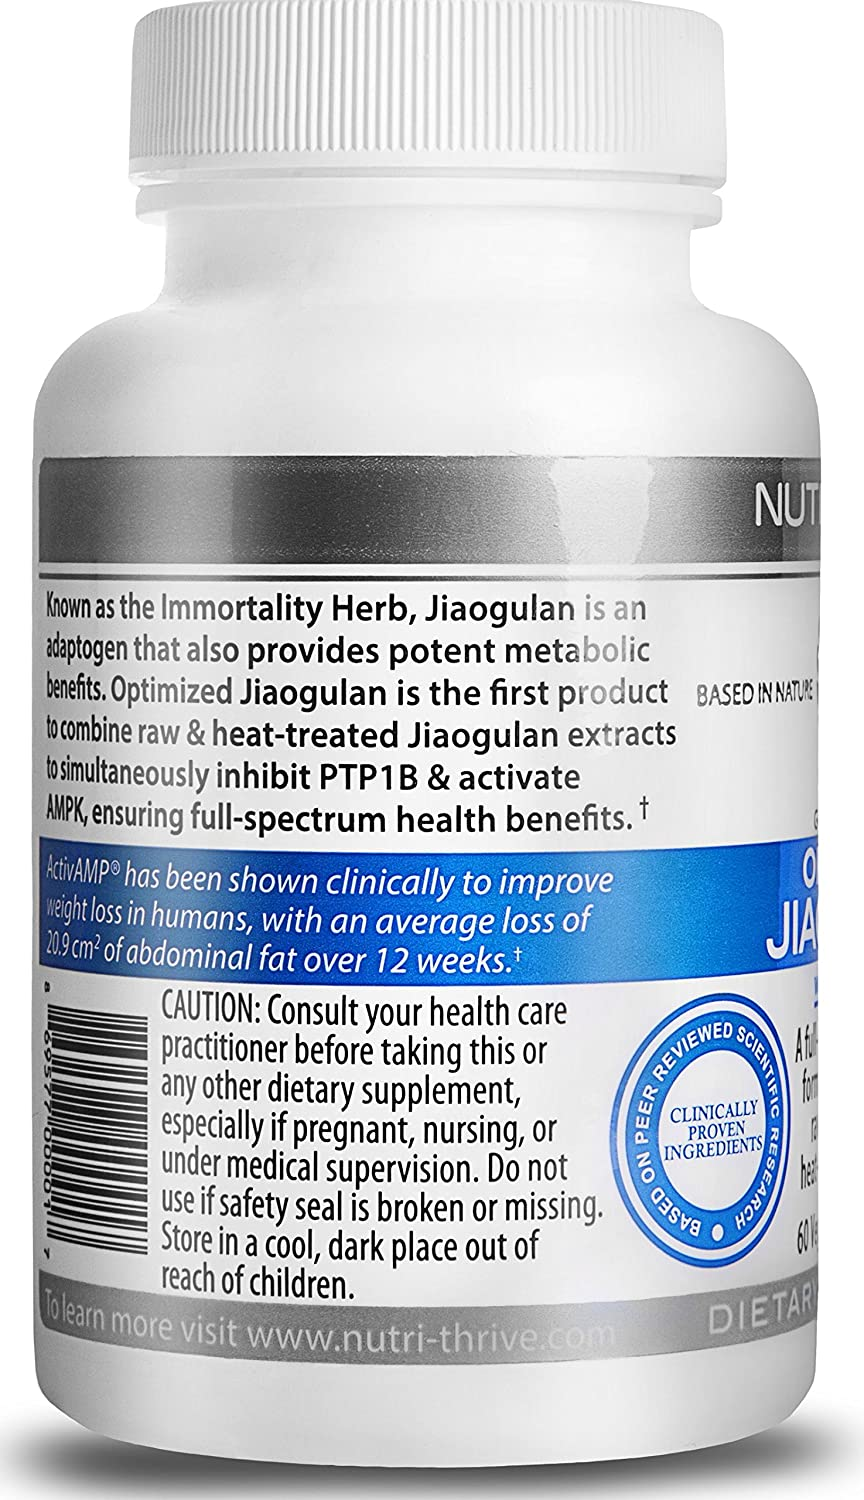 Amazon.com: Optimized Jiaogulan - W/ Clinically Proven ActivAMP® & Raw Gypenosides: Health & Personal Care